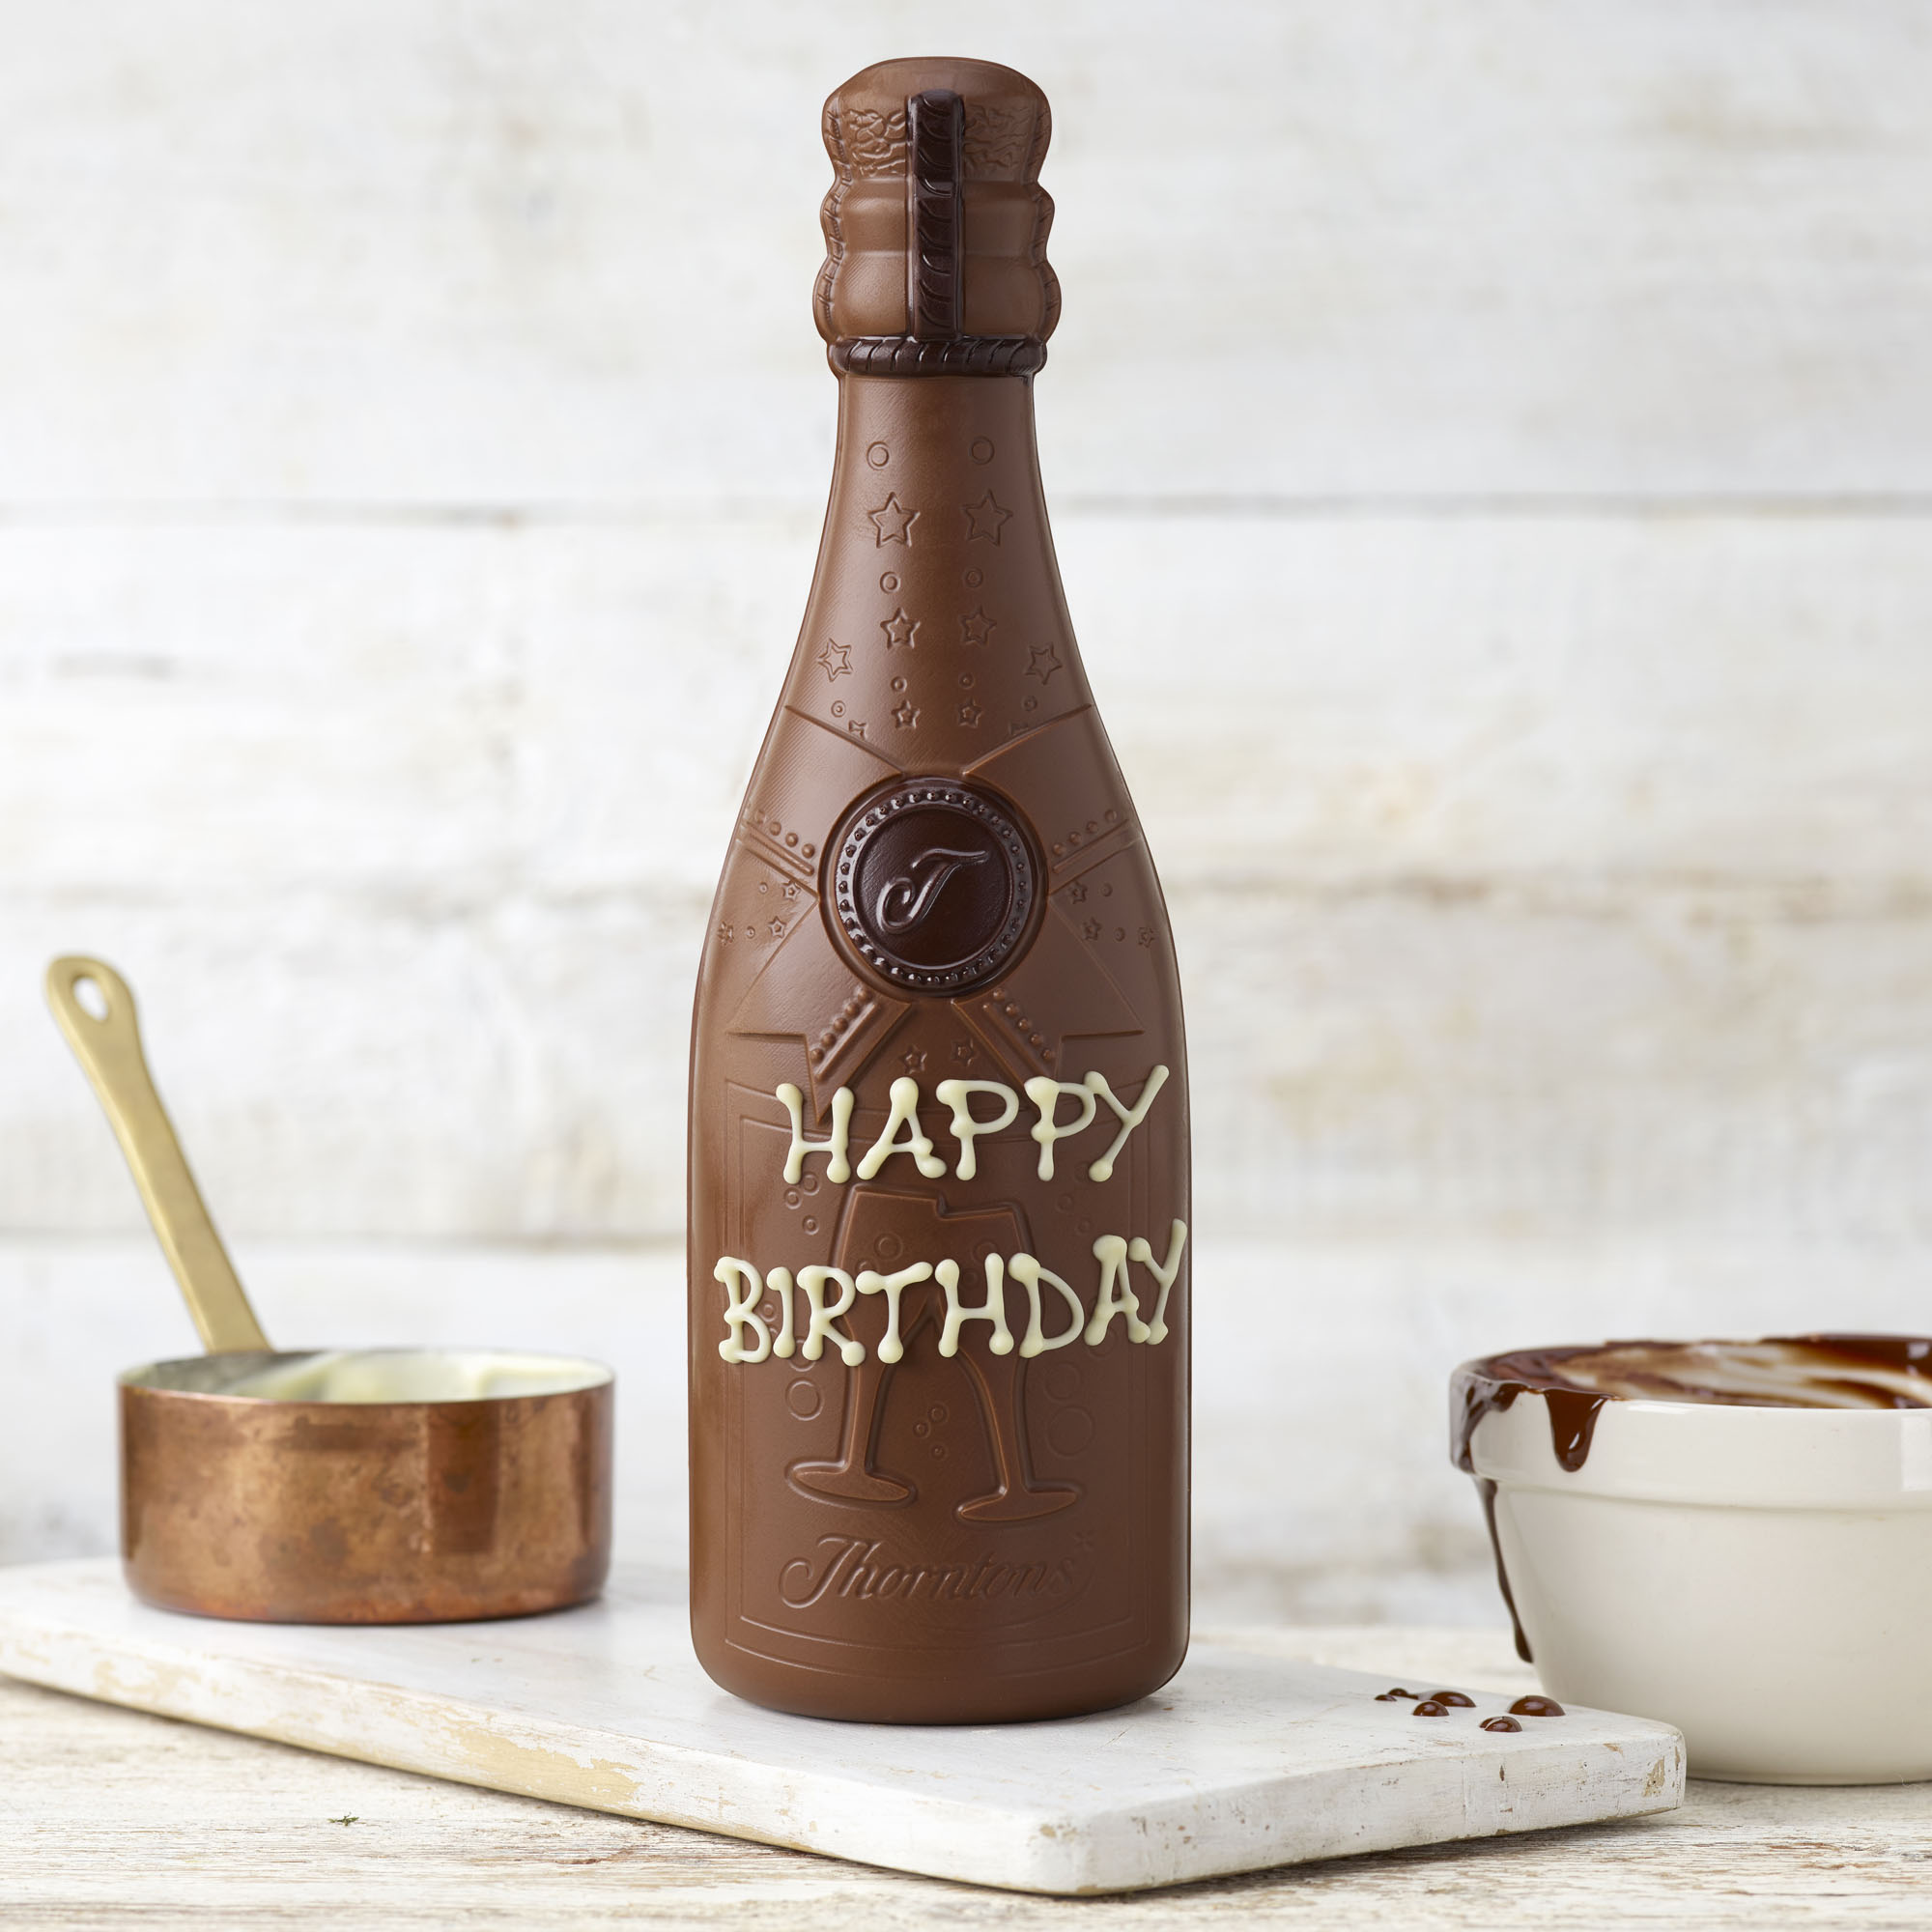 Personalised gifts personalised sweets birthday presents uk personalised gifts personalised sweets birthday presents uk thorntons negle Image collections